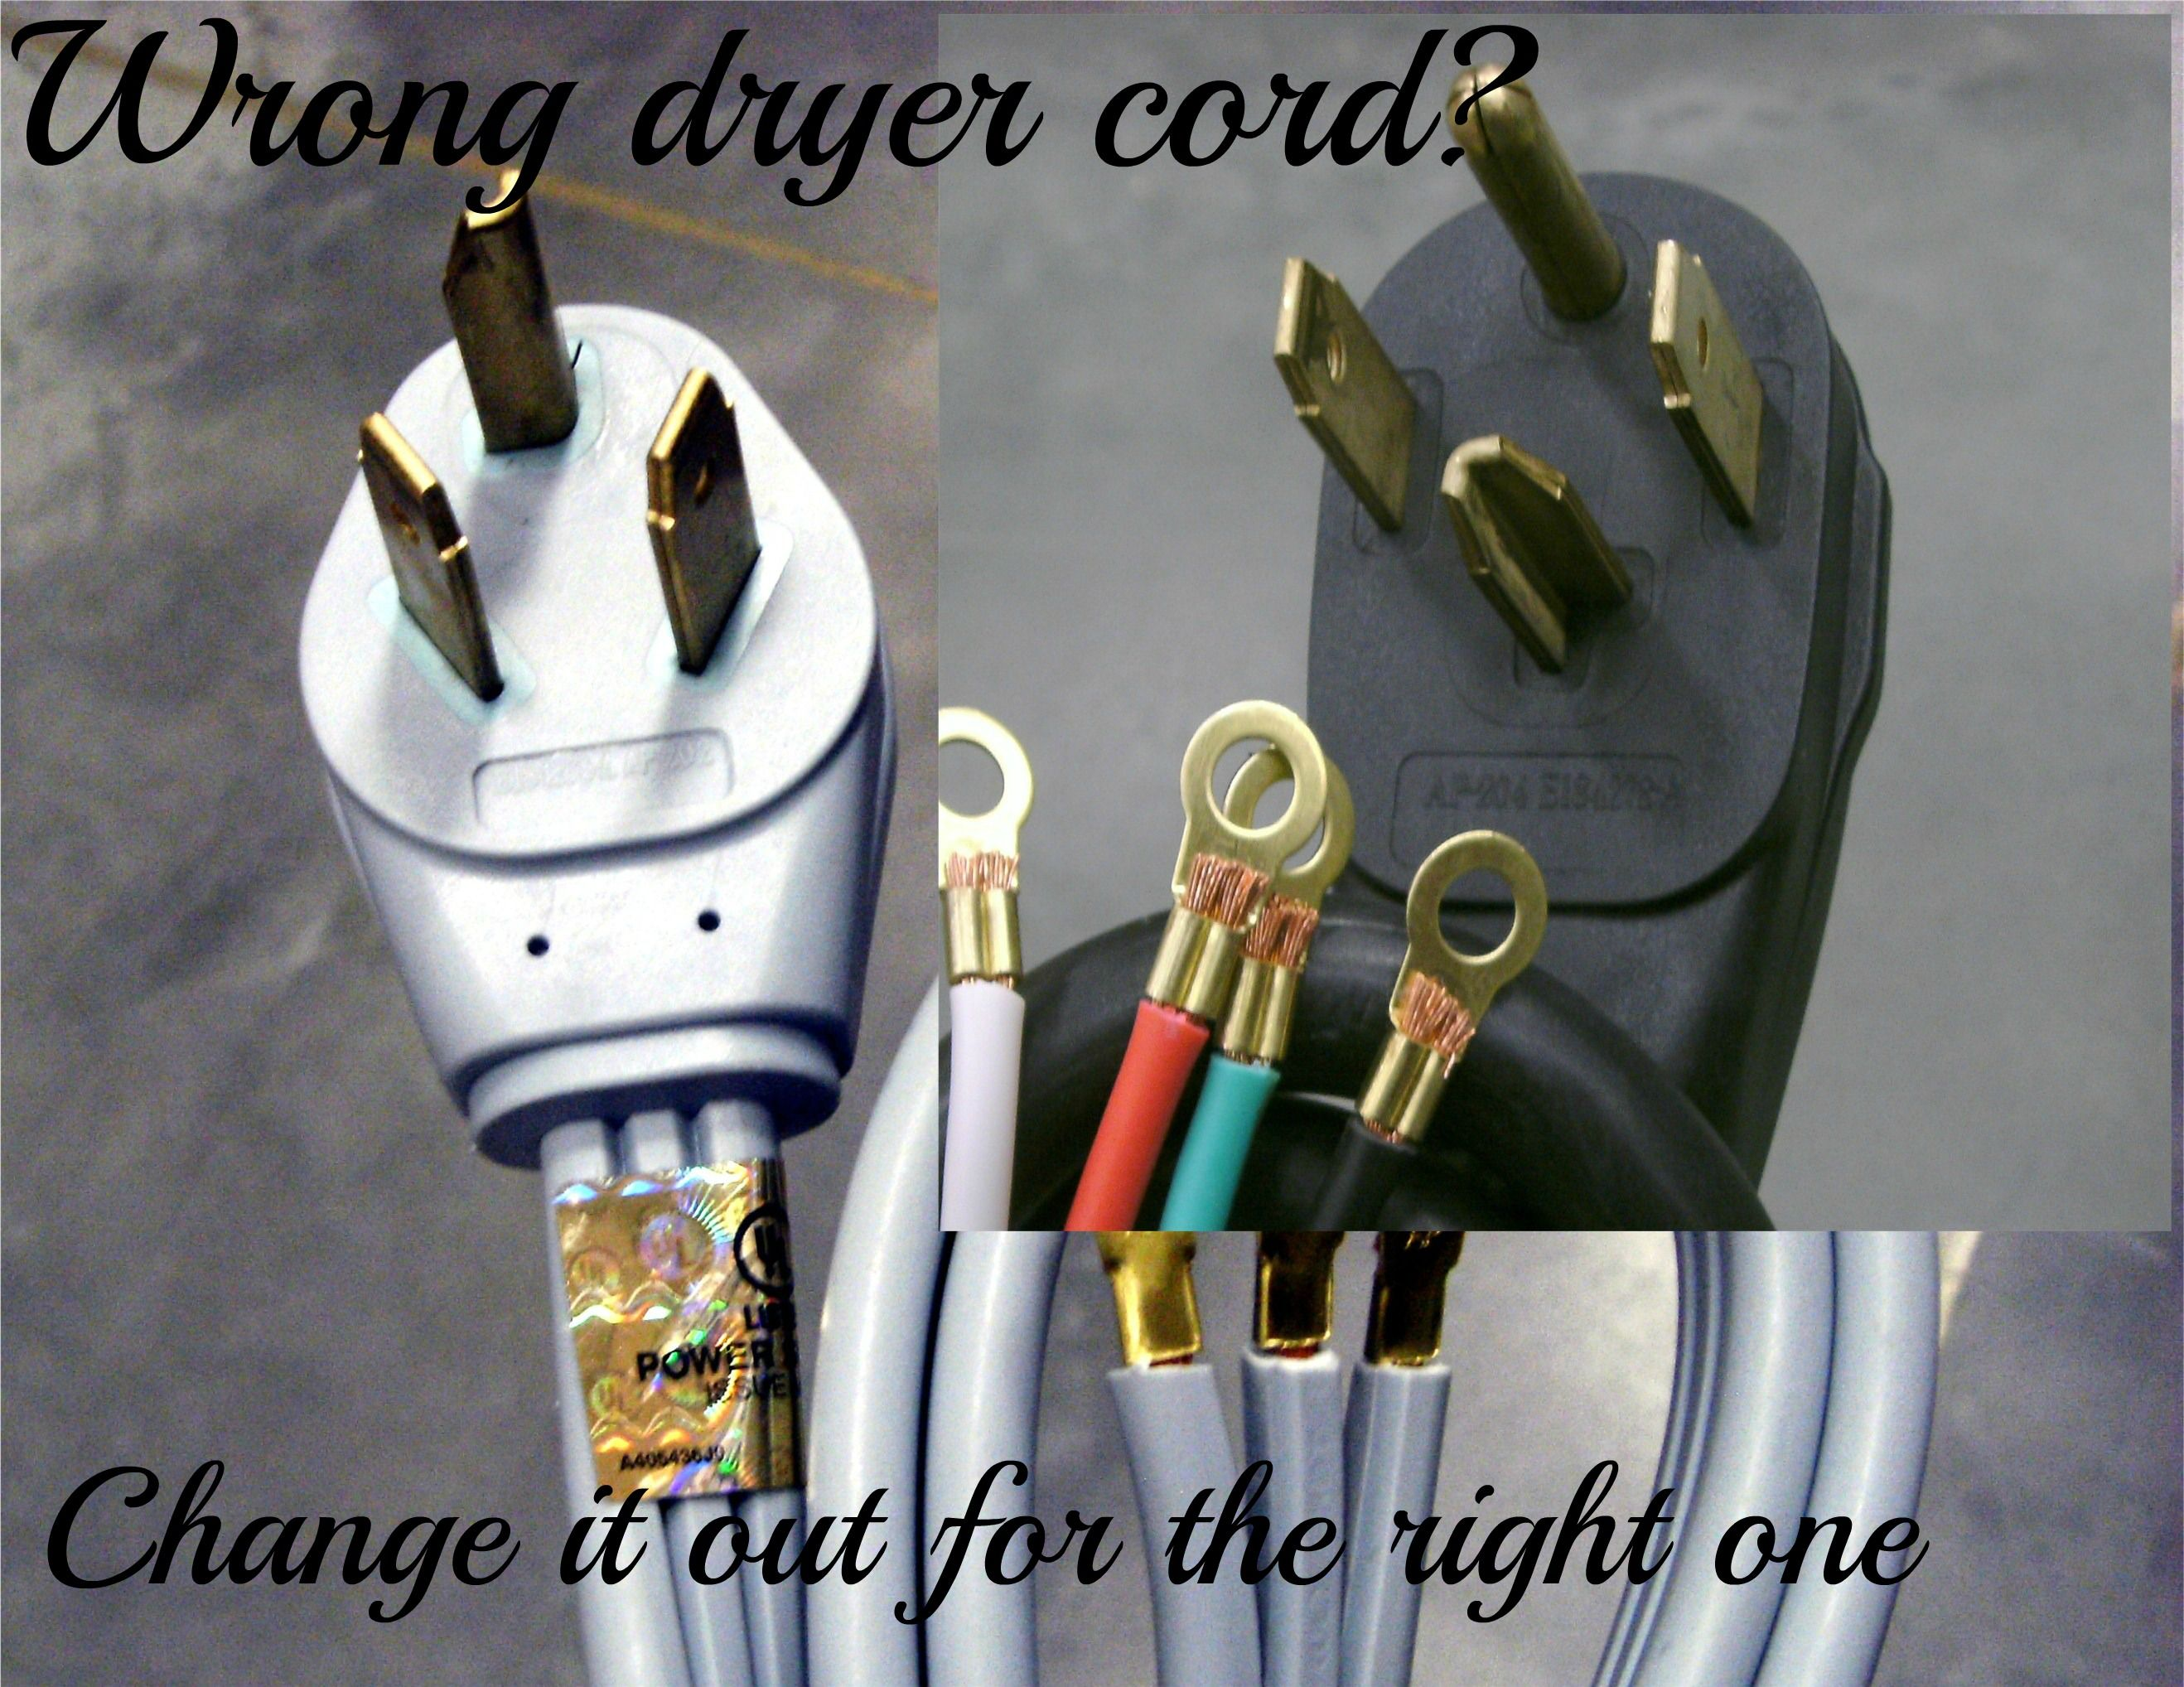 008f3bebc08145f0b0901e4baf420a22 changing a 3 prong to 4 prong dryer plug and cord cord, change wiring diagram 3 prong dryer plug at crackthecode.co